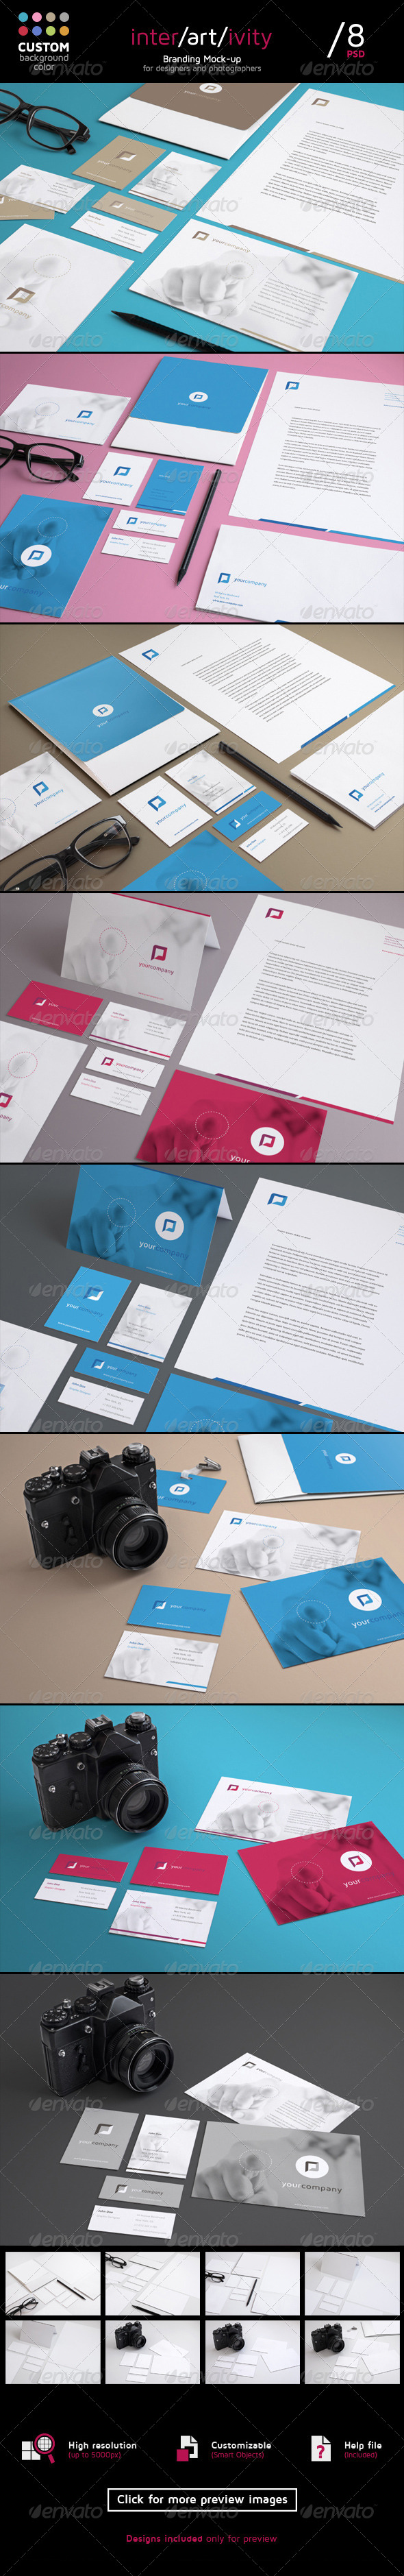 Stationery Mock-Up Set